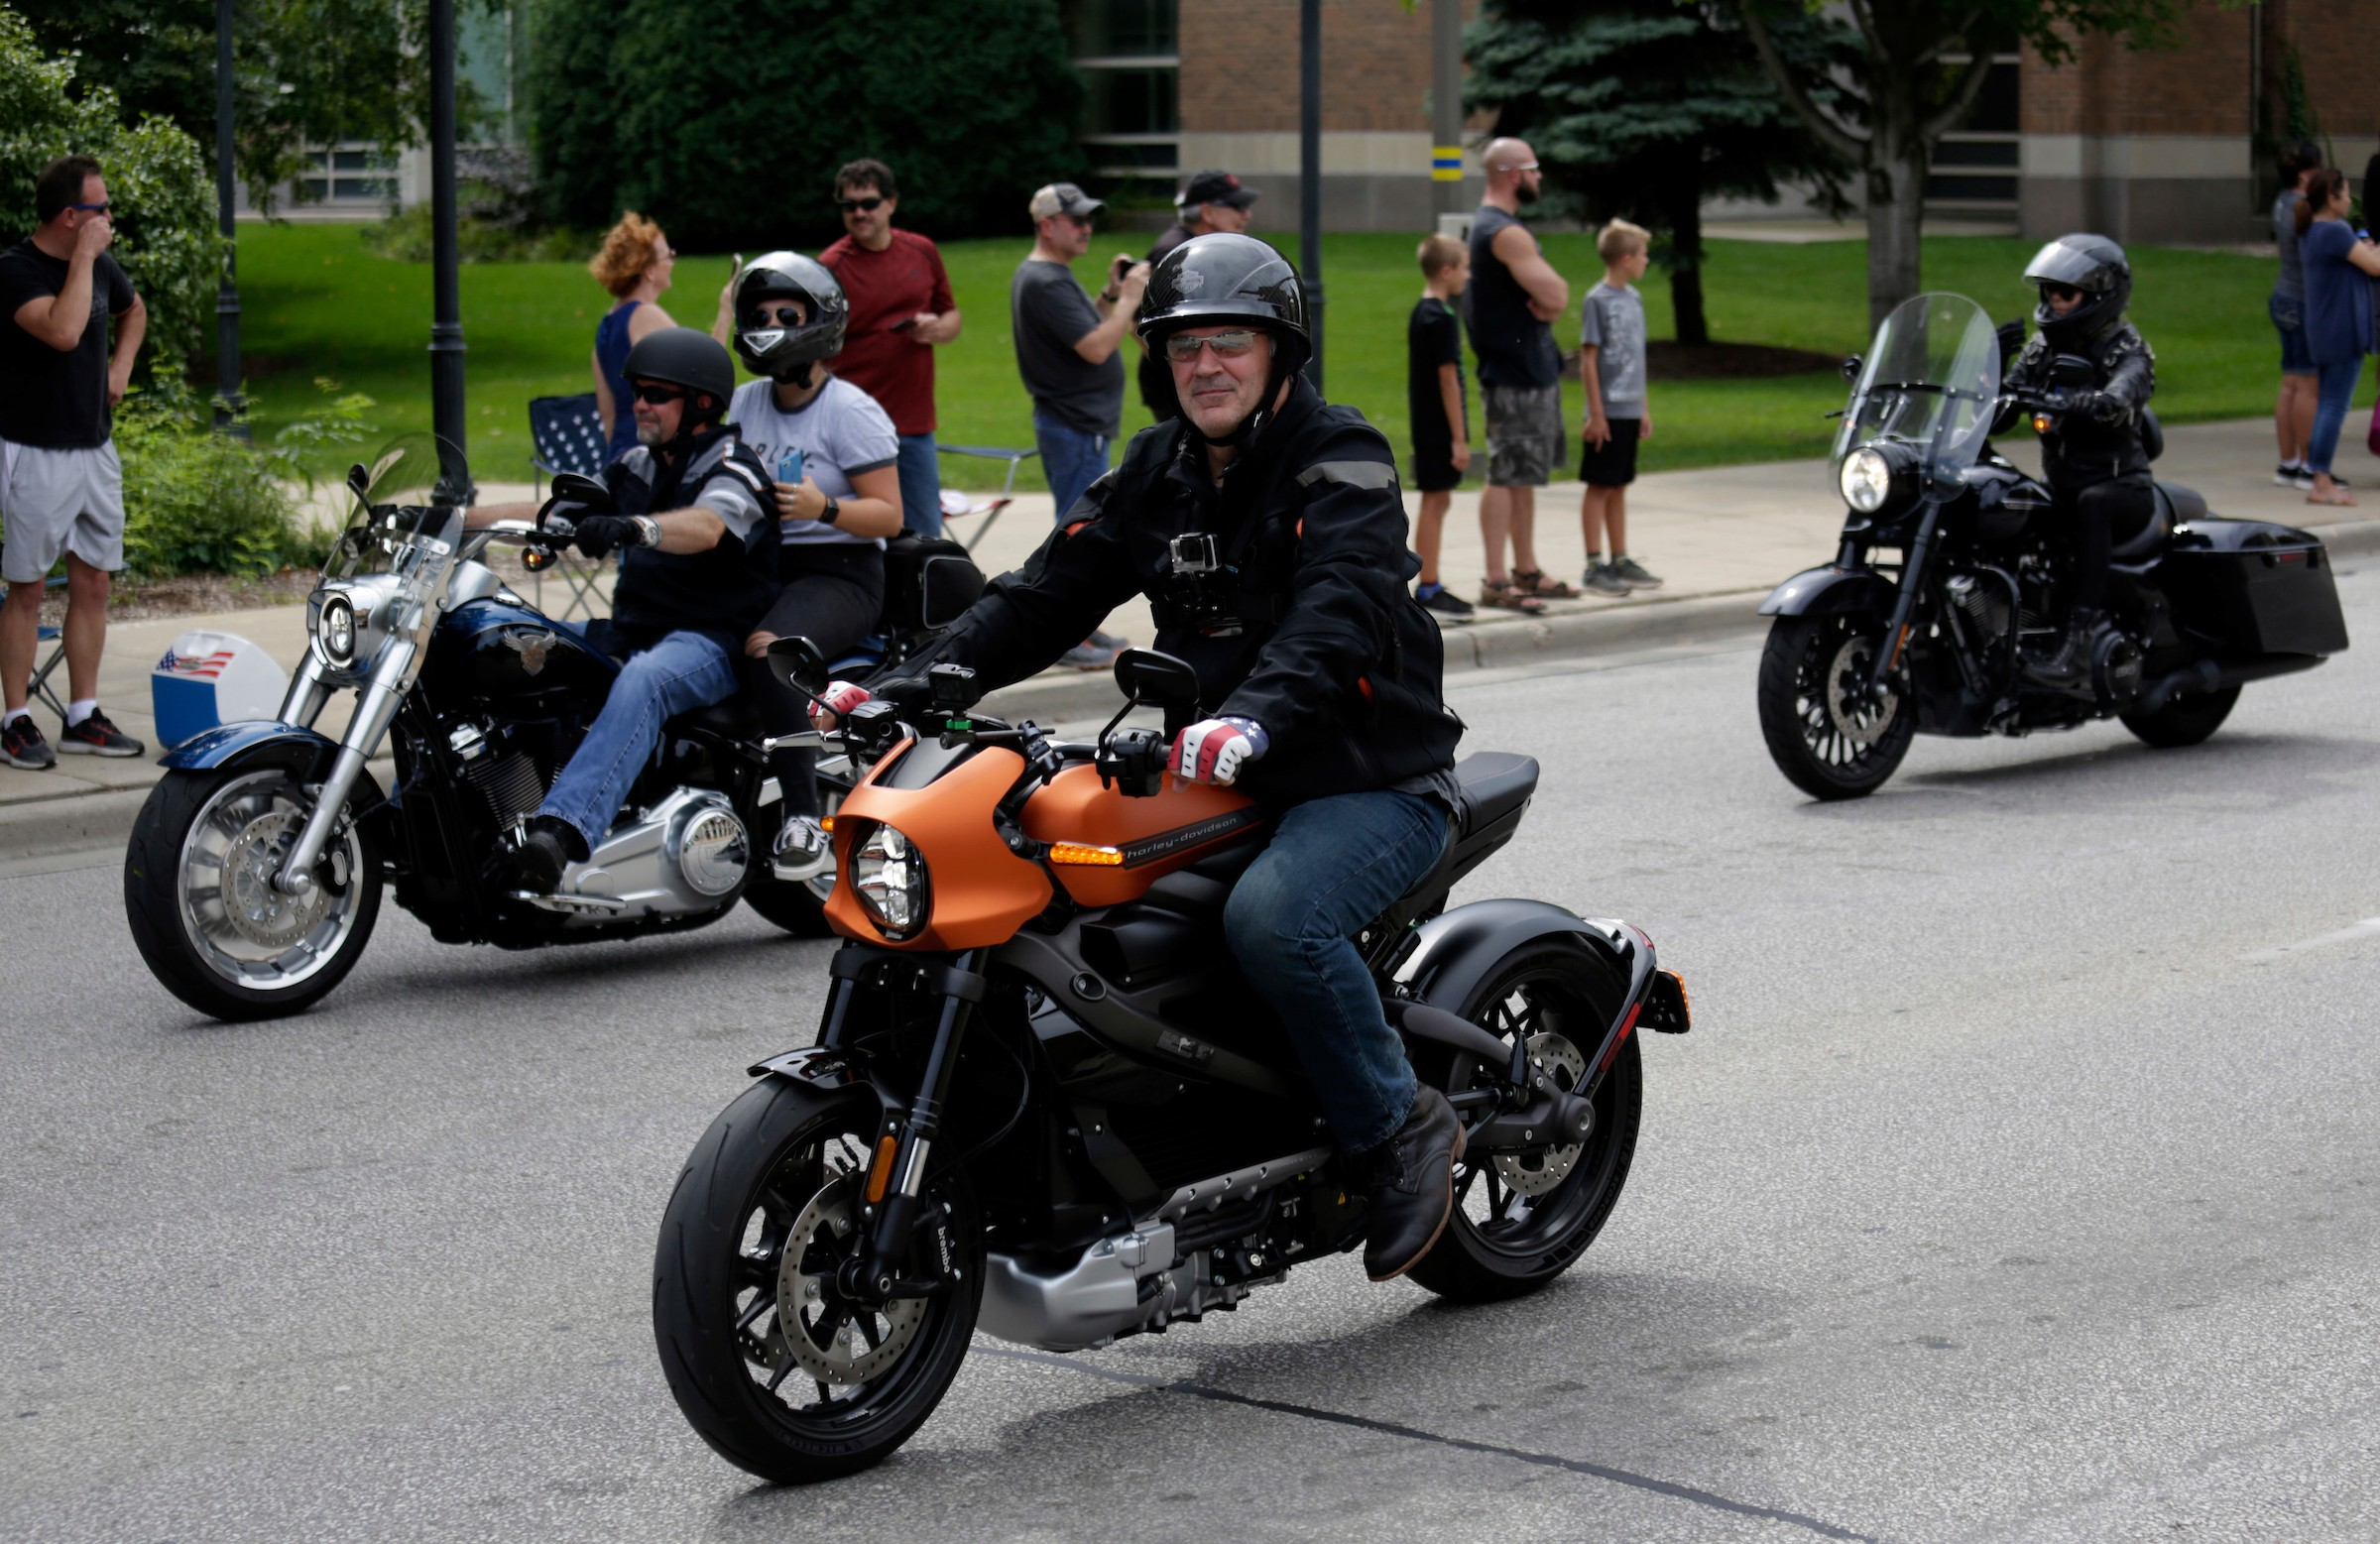 Harley Davidson Touring With The Future Of Harley Davidson As Harley Davidson Sees It Revzilla